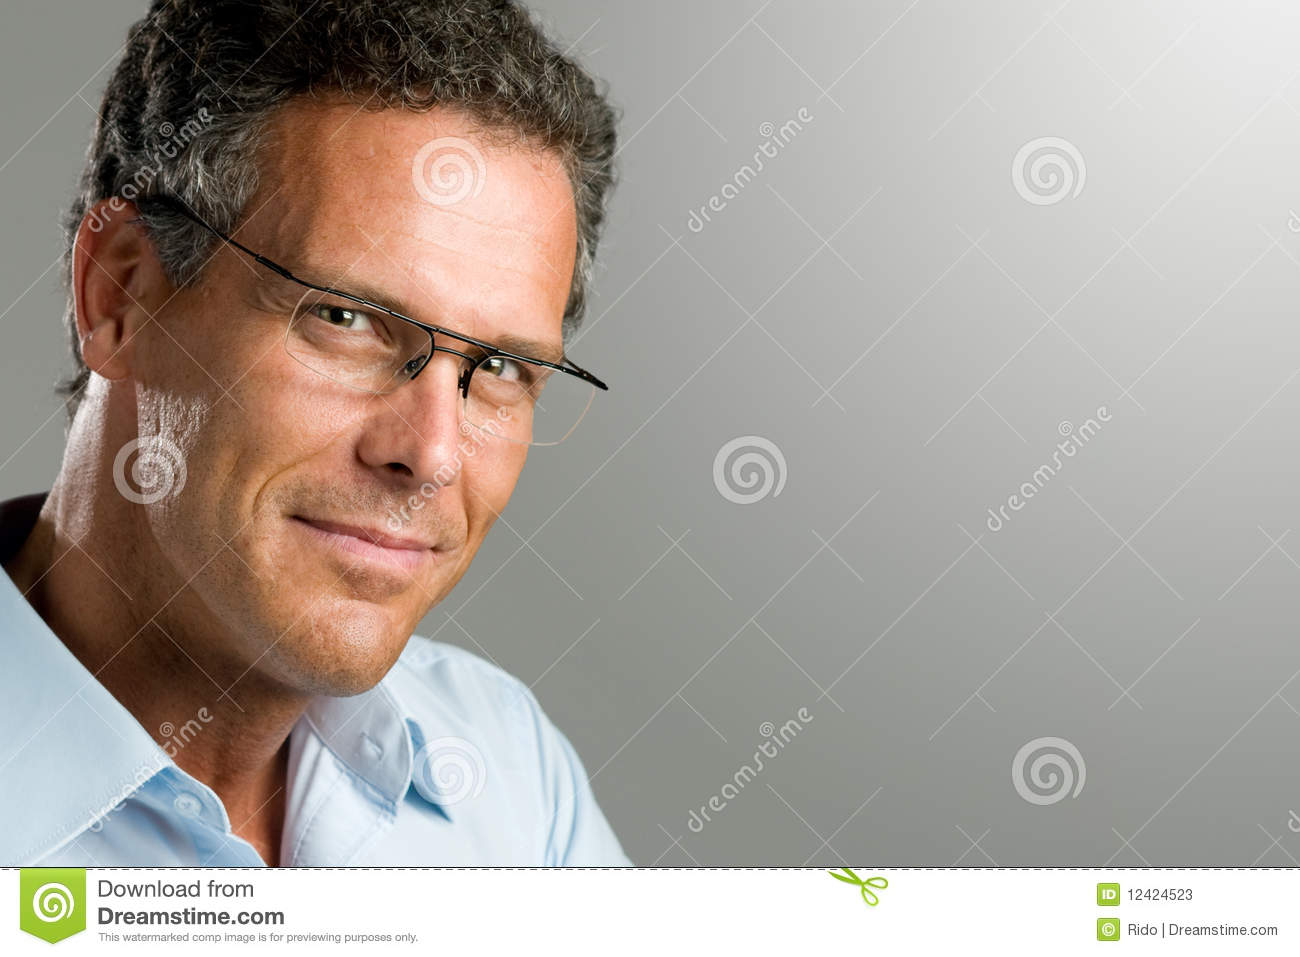 Smiling Man With Glasses Stock Photos Image 12424523